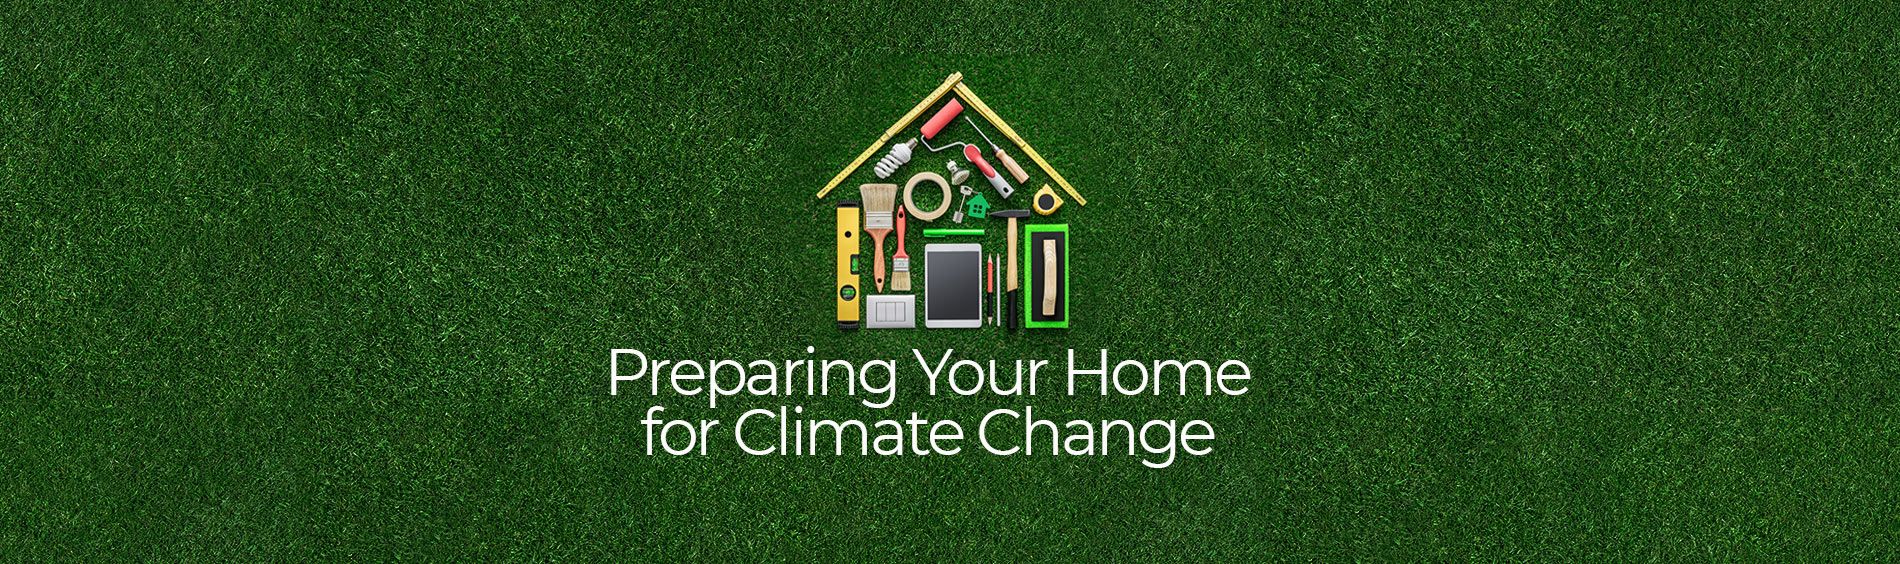 "Text that reads ""preparing your home for climate change"" with a house icon"